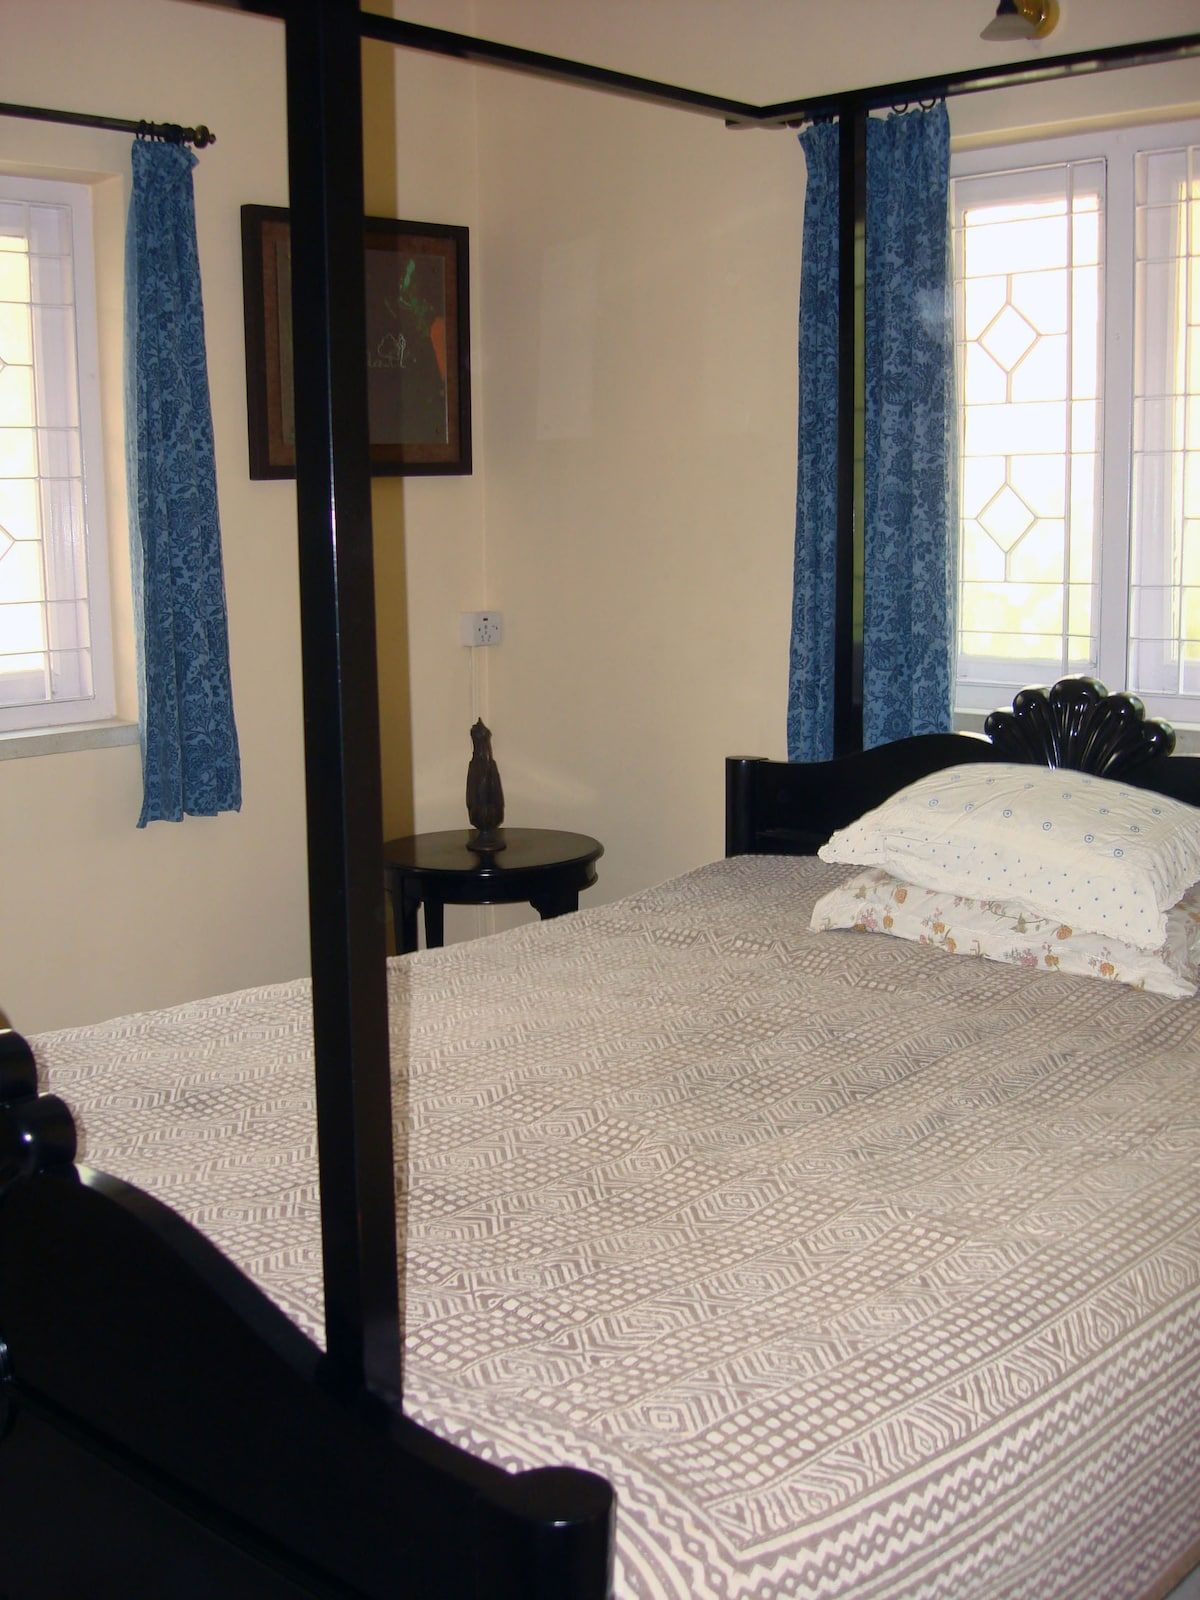 View of the two windows in the master bedroom